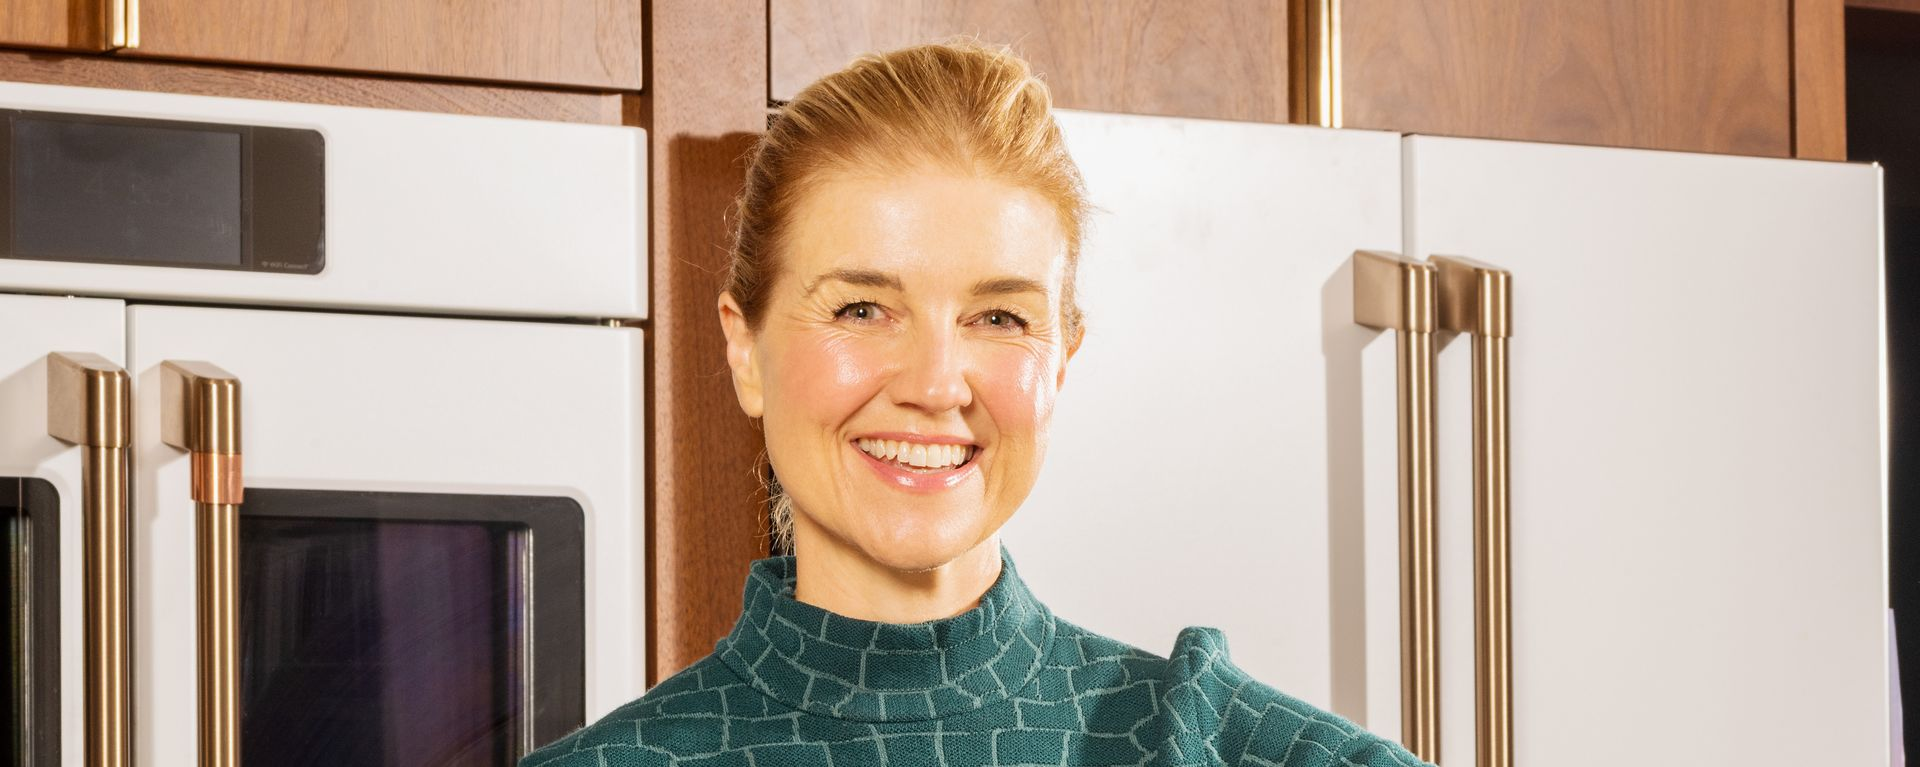 Jeni Britton, Founder and Chief Creative Officer of Jeni's Splendid Ice Cream, Partners with CAFÉ to Launch New Espresso Line